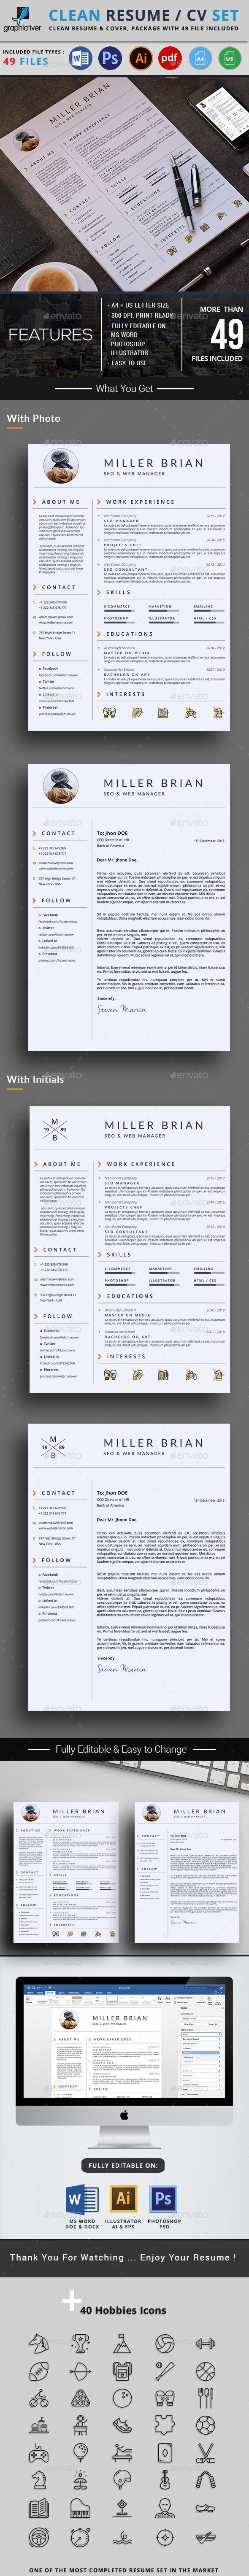 how to write a business cover letter%0A Modern professional resume and cover letter templates in A  and US letter  formats  Flexible and